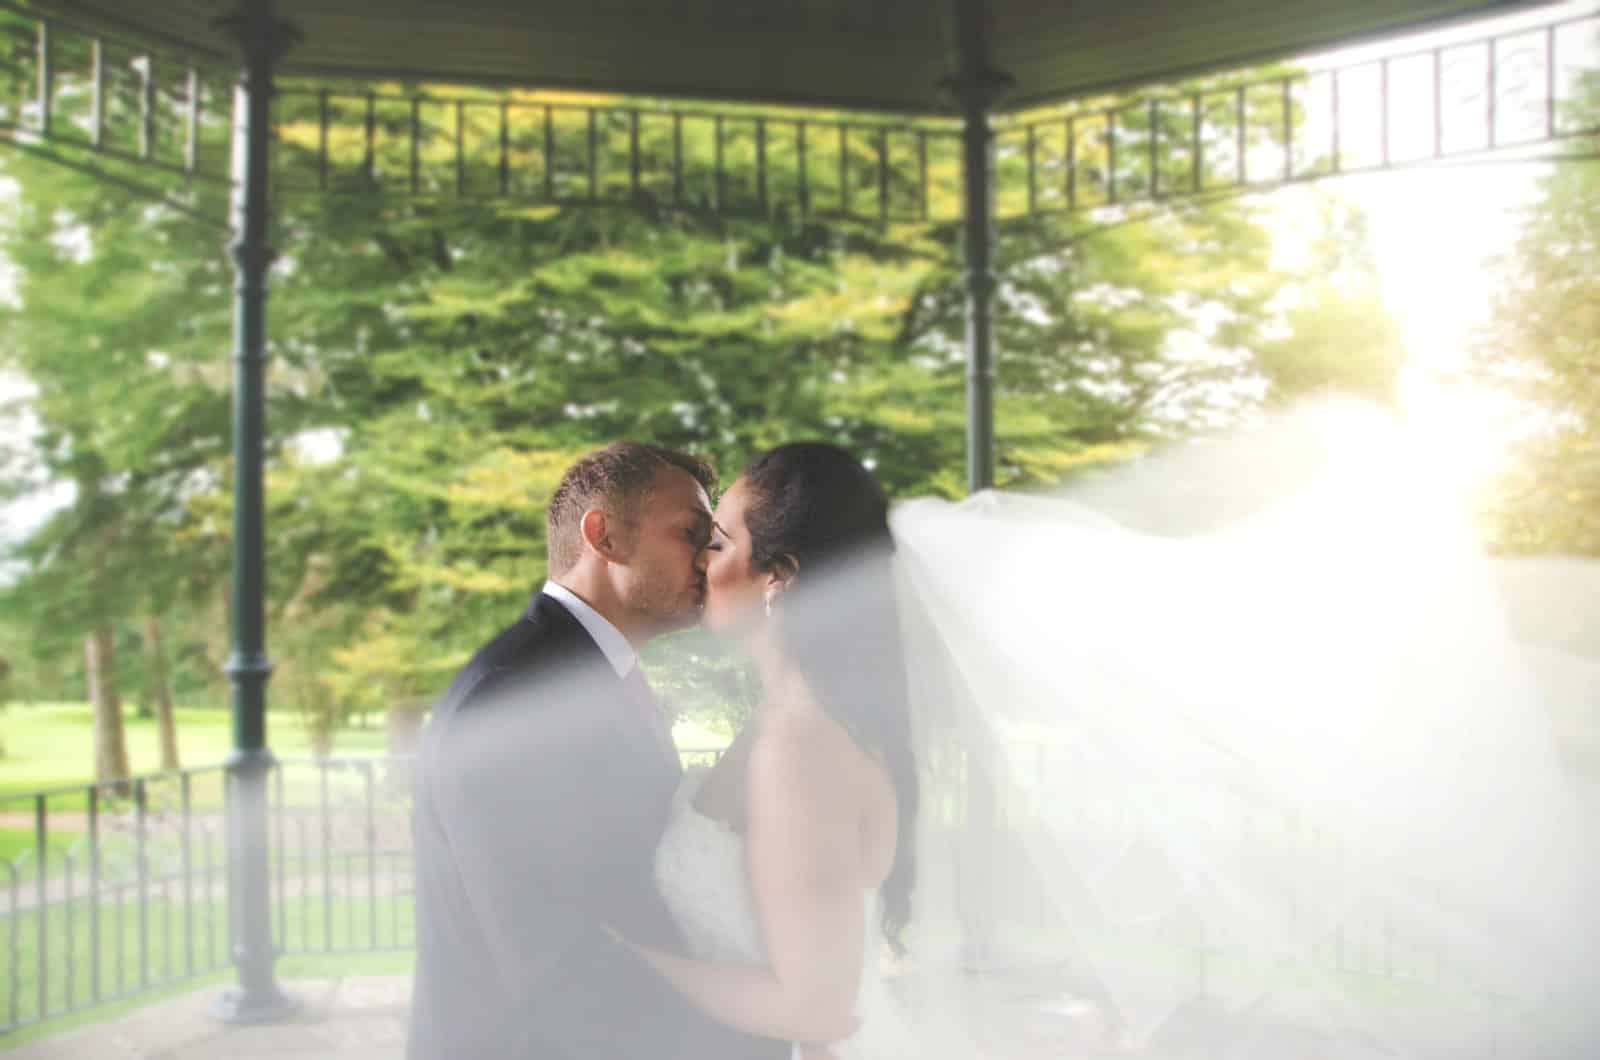 Bride & Groom Kiss in park with veil in foreground